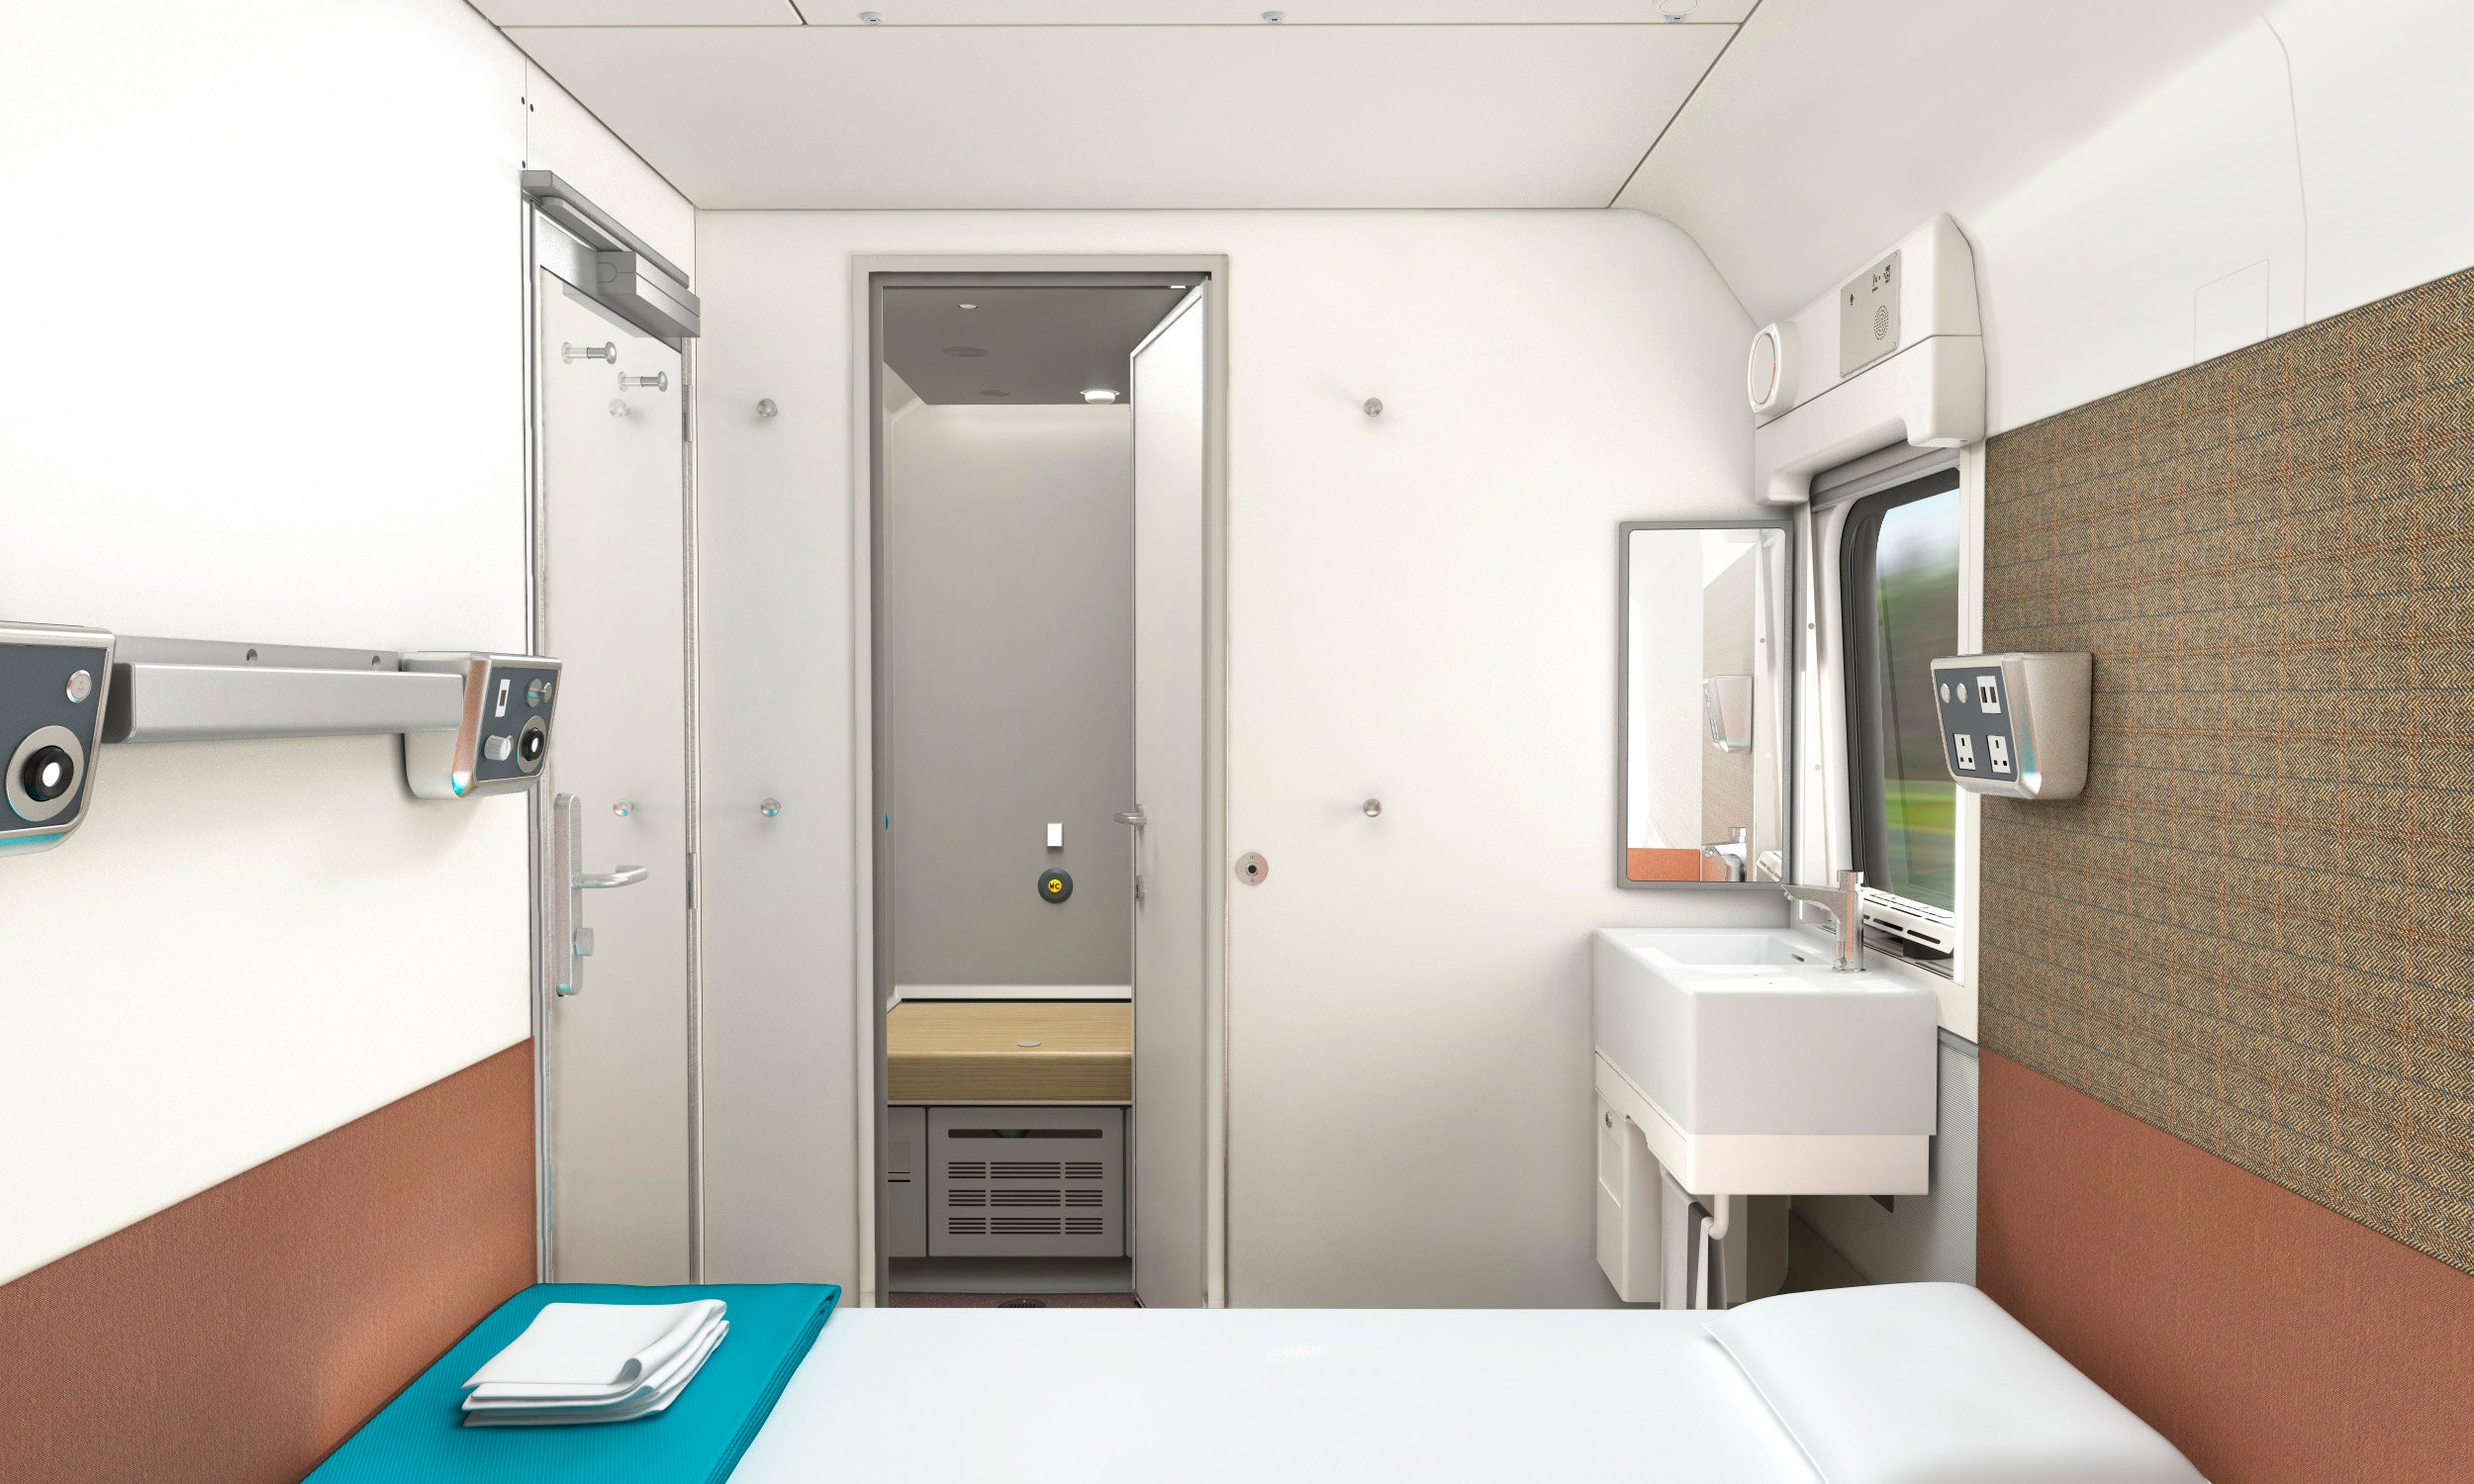 Caledonian Sleeper Why Catching The Overnight Train From